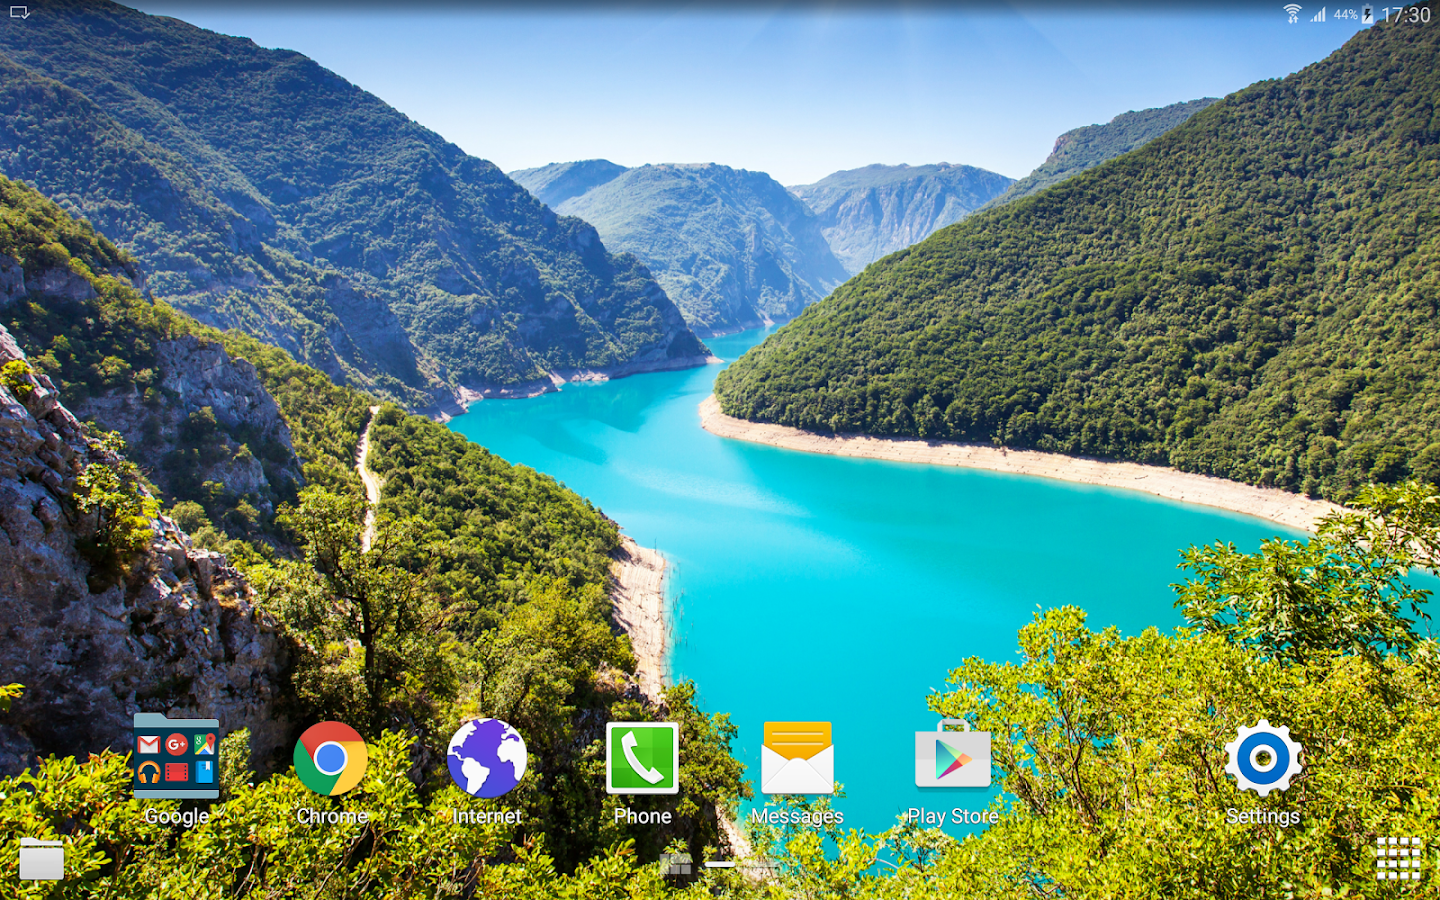 4k wallpapers android apps on google play for Sfondi pc 4k